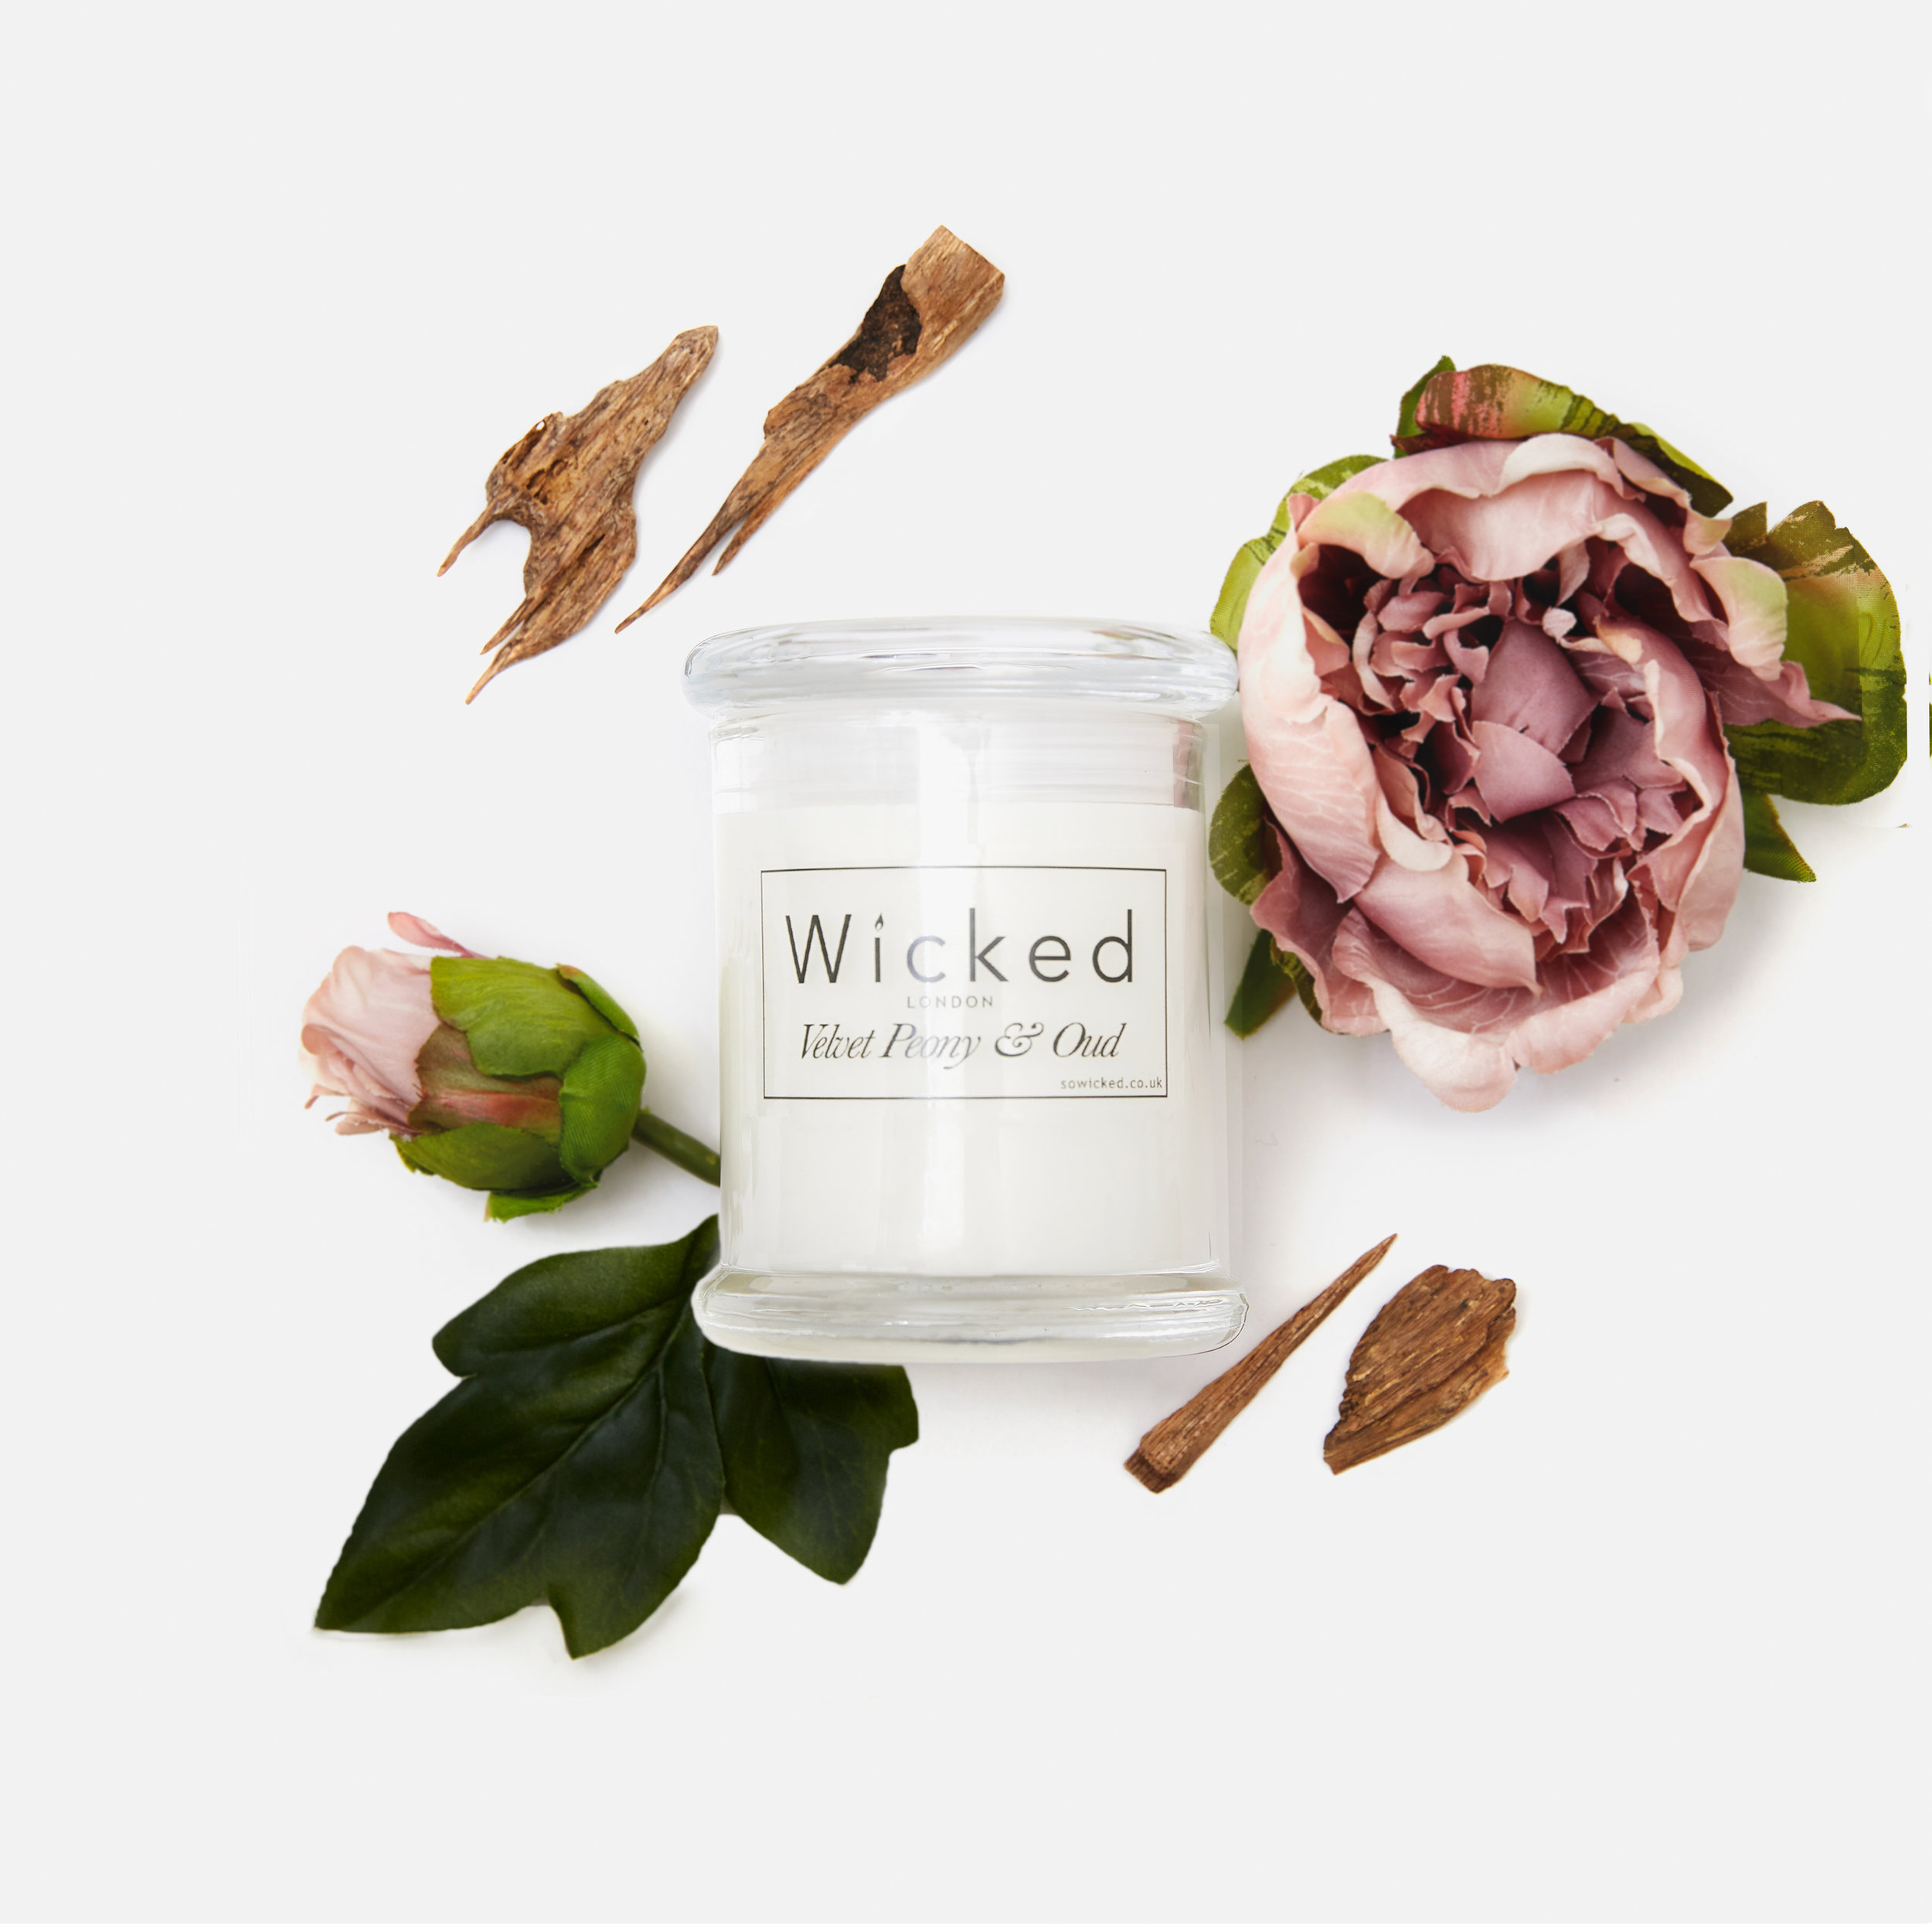 wicked-london-scented-candle-kent-support-local-pop-up-velvet-peony-oud.jpg